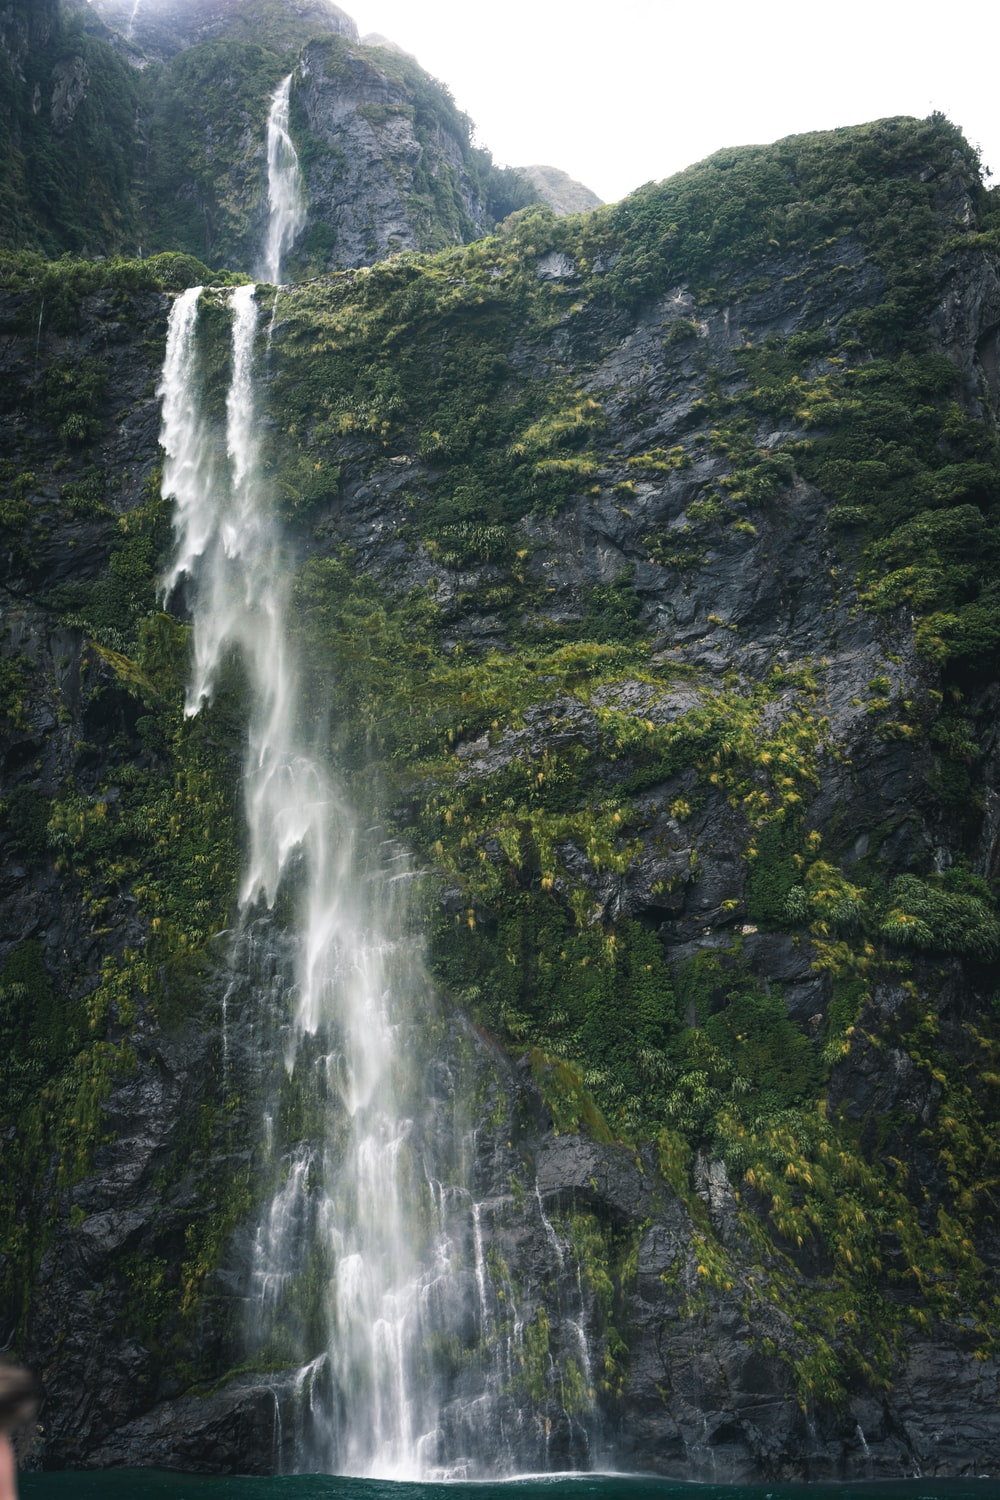 water falls by the mountain